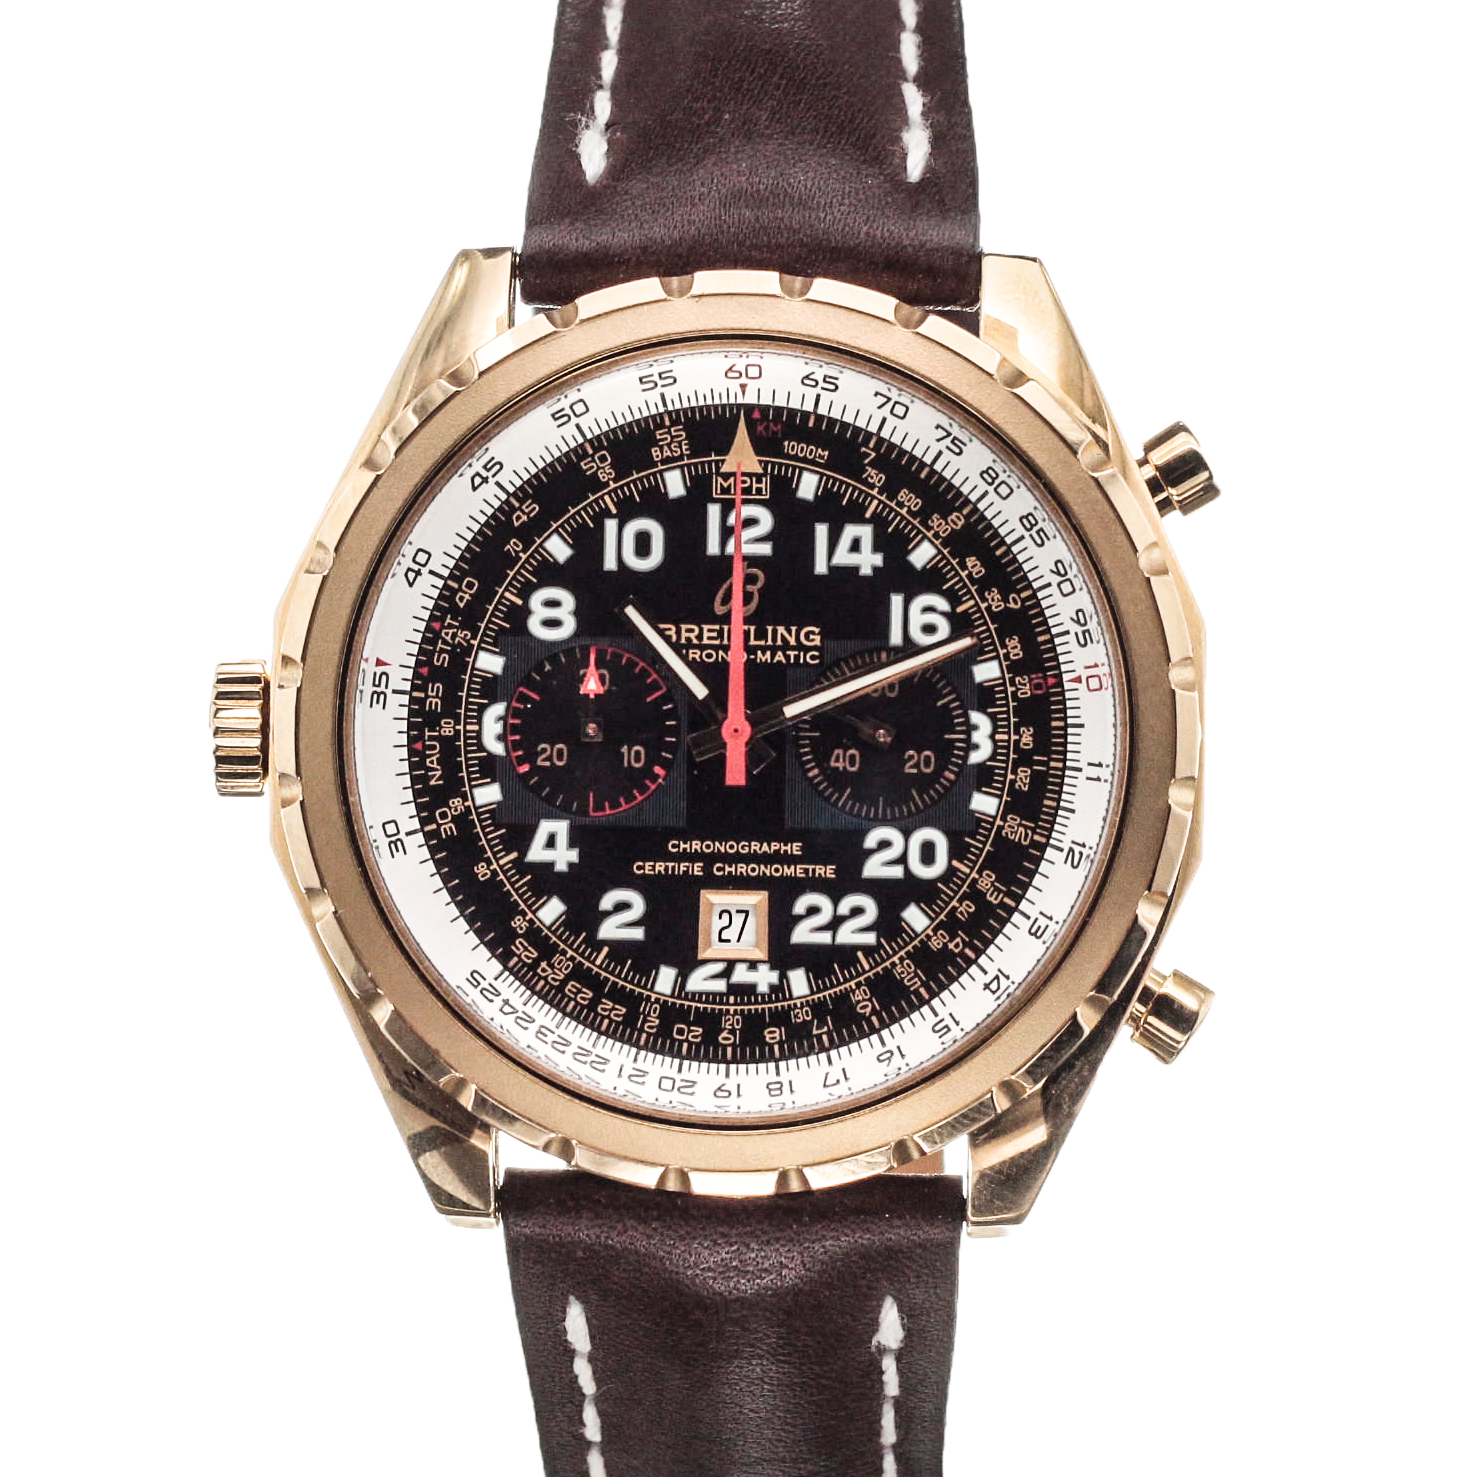 Breitling For Bentley Infos Price History: Breitling Chrono-Matic - Infos, Price & History